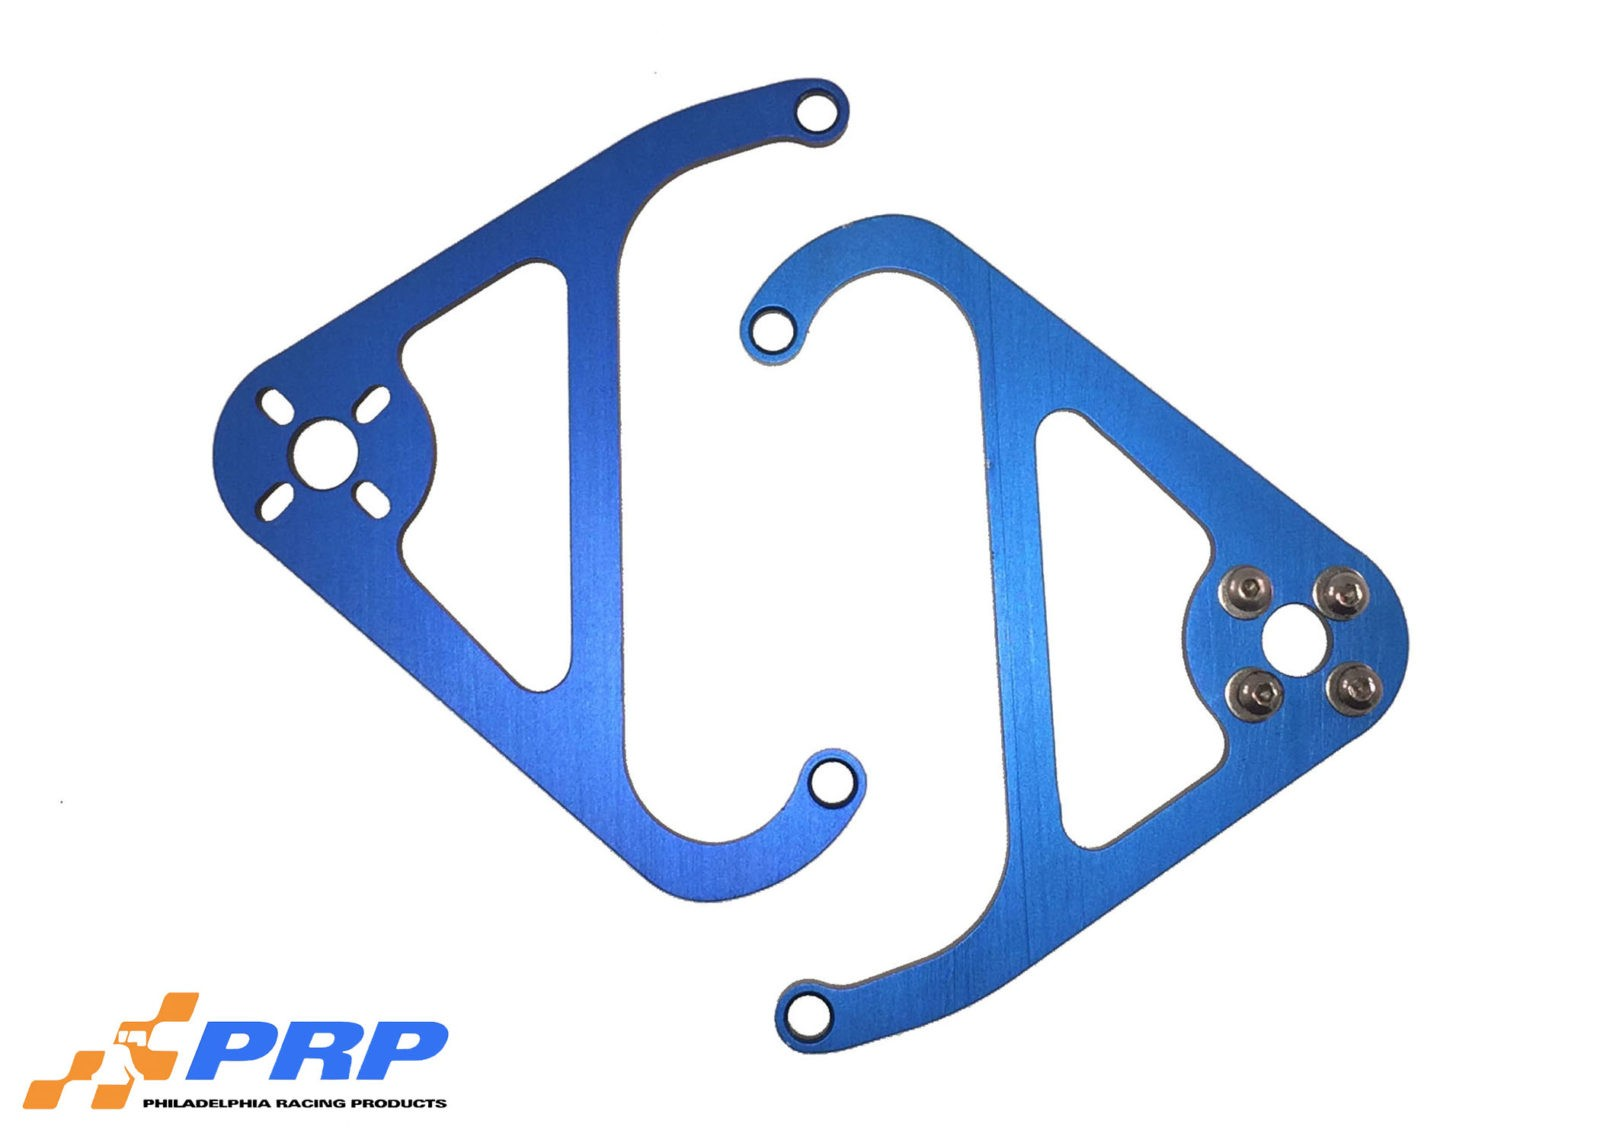 Blue Nitrous Valve Mounting Brackets made by PRP Racing Products